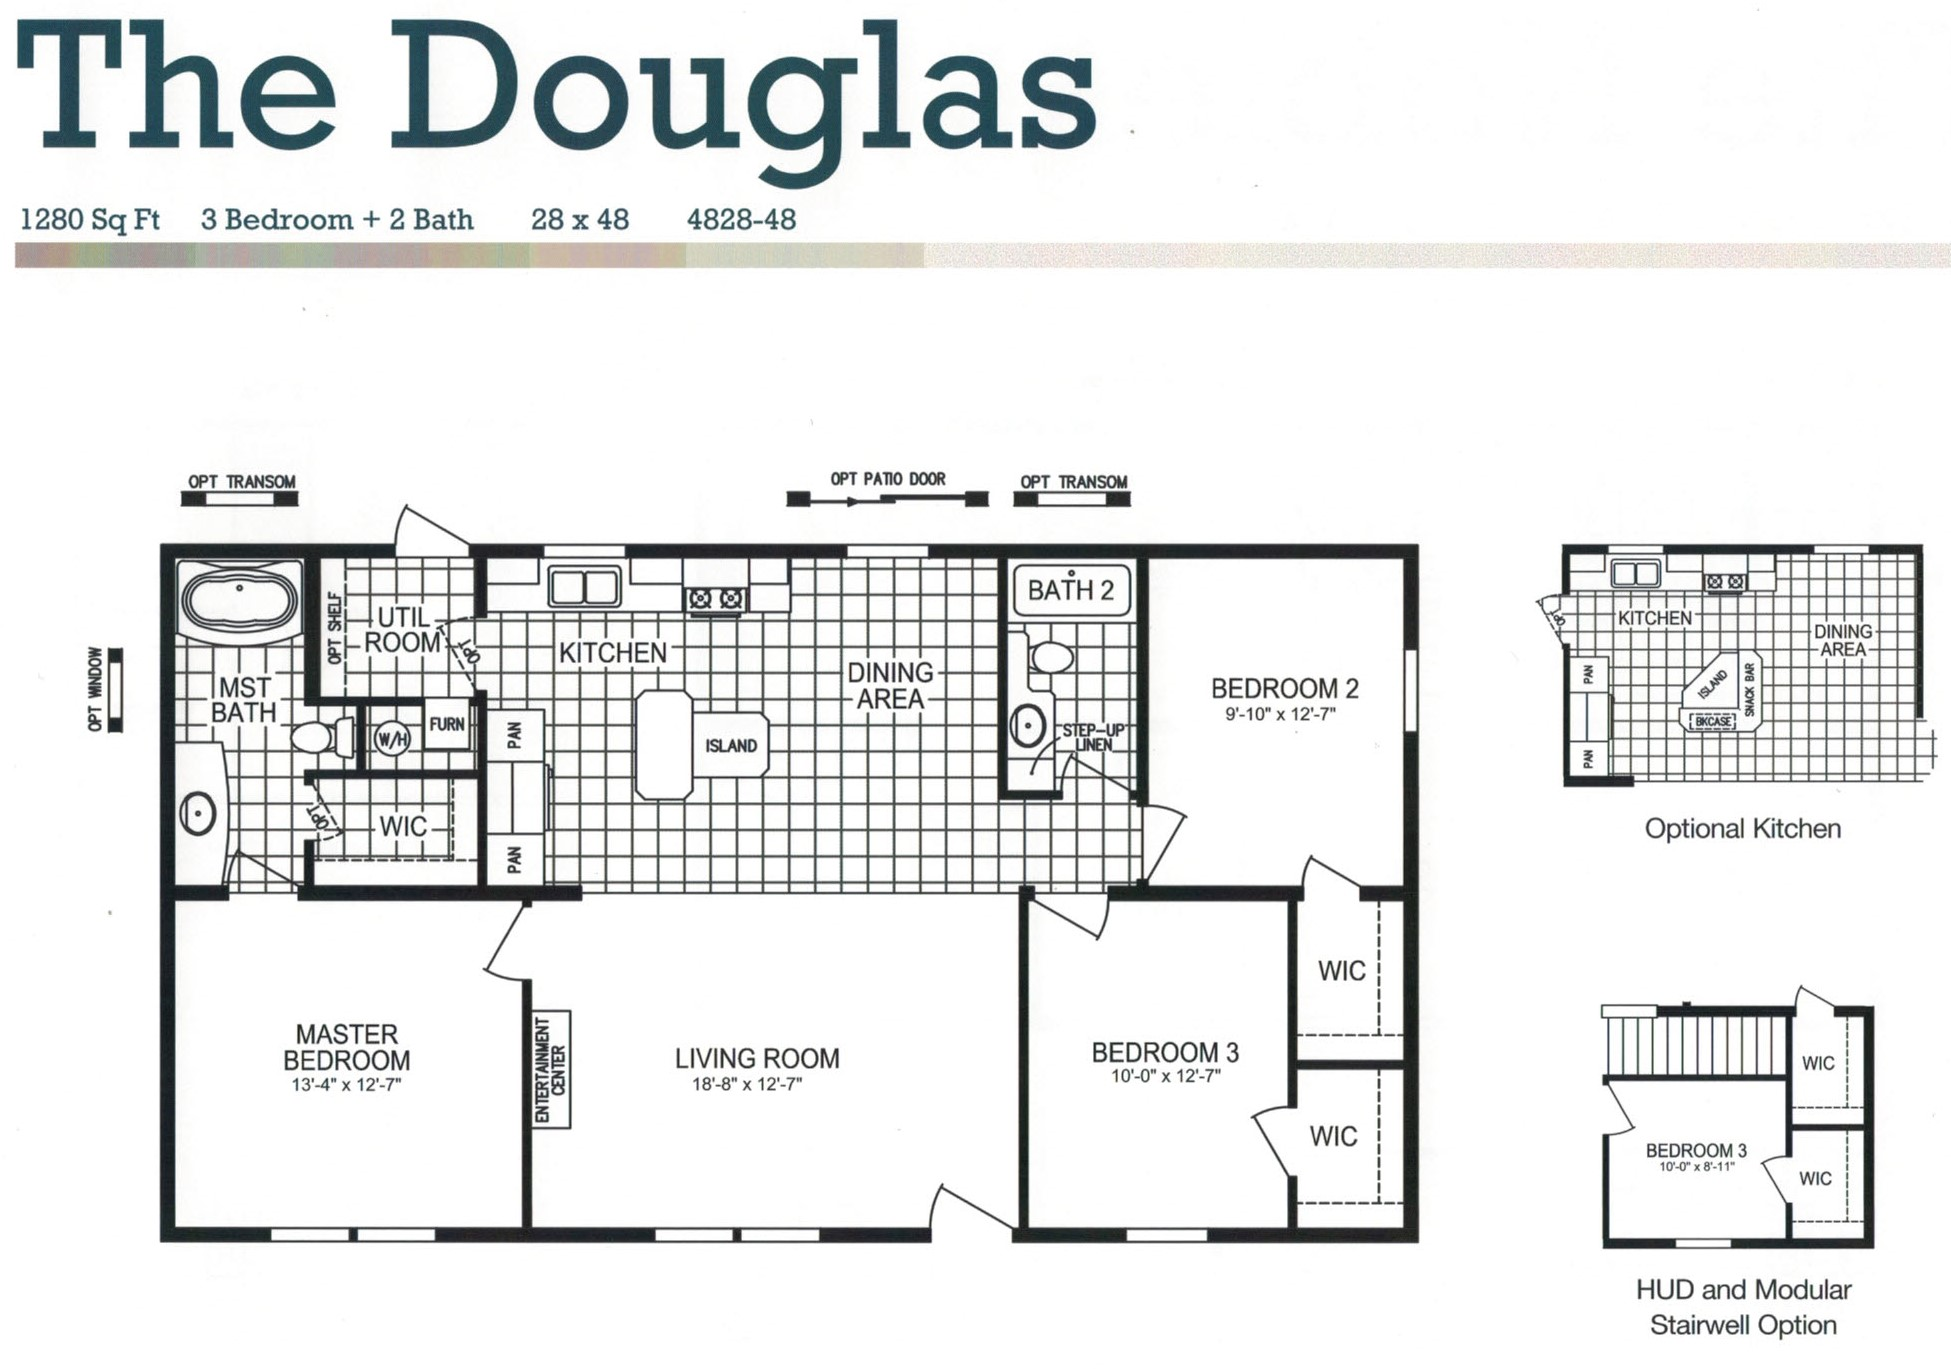 Agl Homes Clayton Homes Inspiration Series Clayton Double Wide Single Wide Home Plans In New York